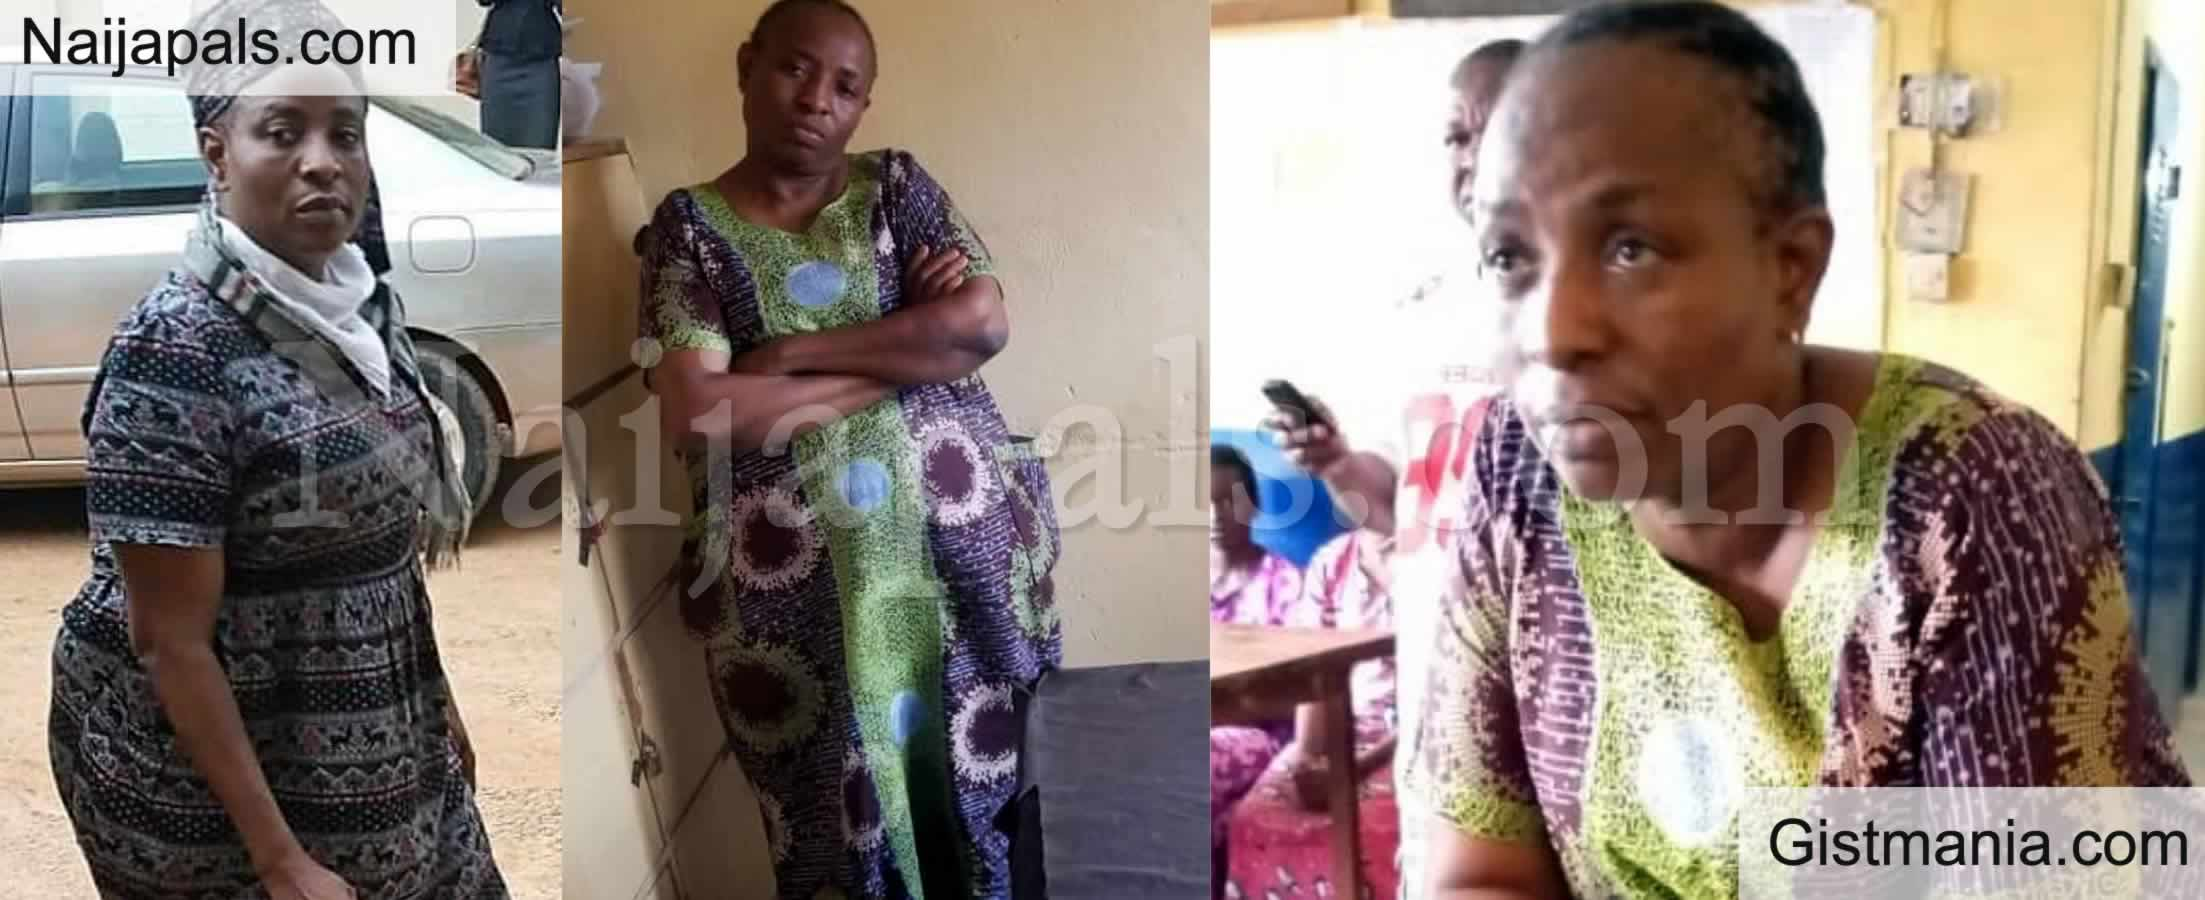 <img alt='.' class='lazyload' data-src='https://img.gistmania.com/emot/photo.png' /> Living Faith Deaconess, <b>Yemi Awolola Pleads Guilty To Child Abuse, Due To Be Sentenced</b>